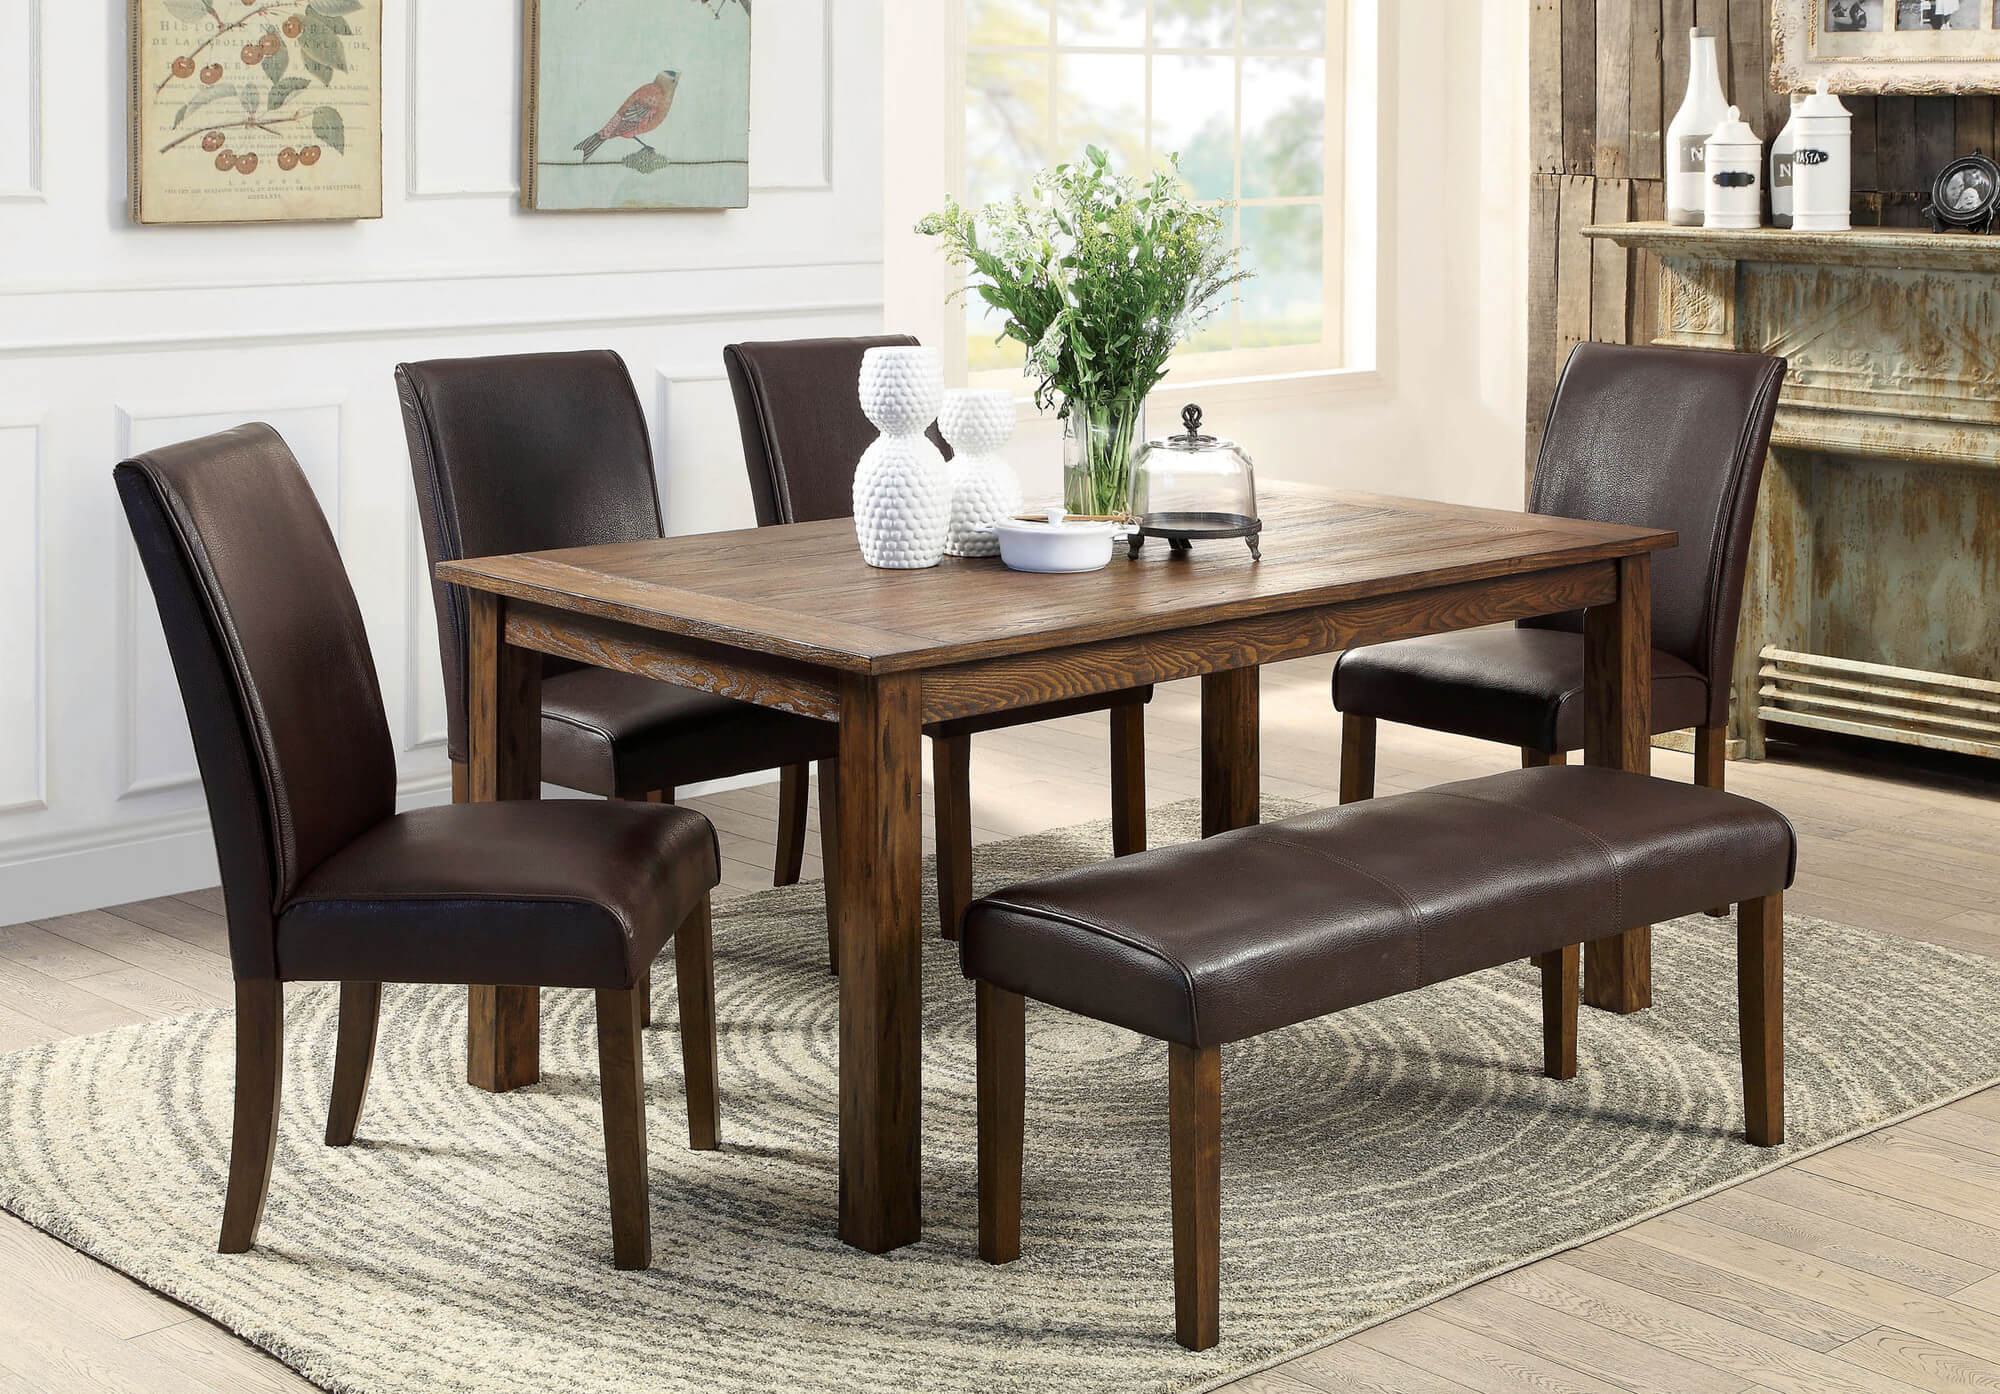 Here\u0027s a rustic rectangle dining table with fully cushioned chairs and bench. This look works : rectangular dining table sets - pezcame.com